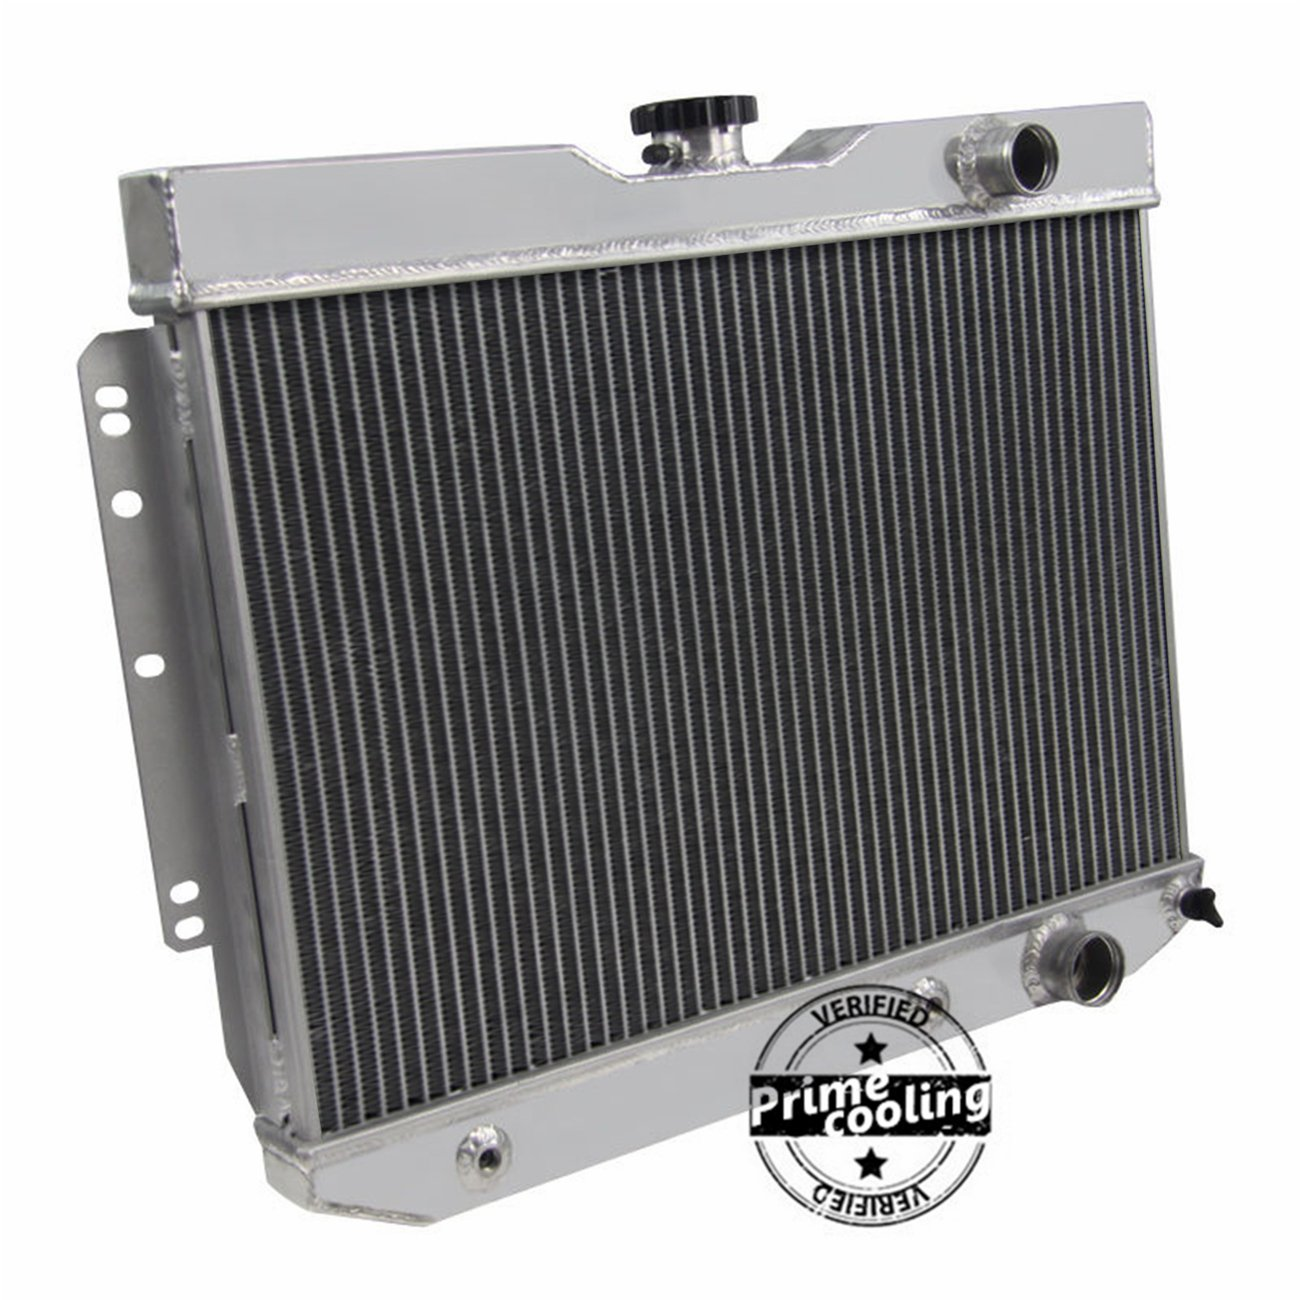 Primecooling 3 Row All Aluminum Radiator For 1959 1965 1966 Chevrolet Bel Air Biscayne Caprice Impala Kingswood 38 67l Automotive